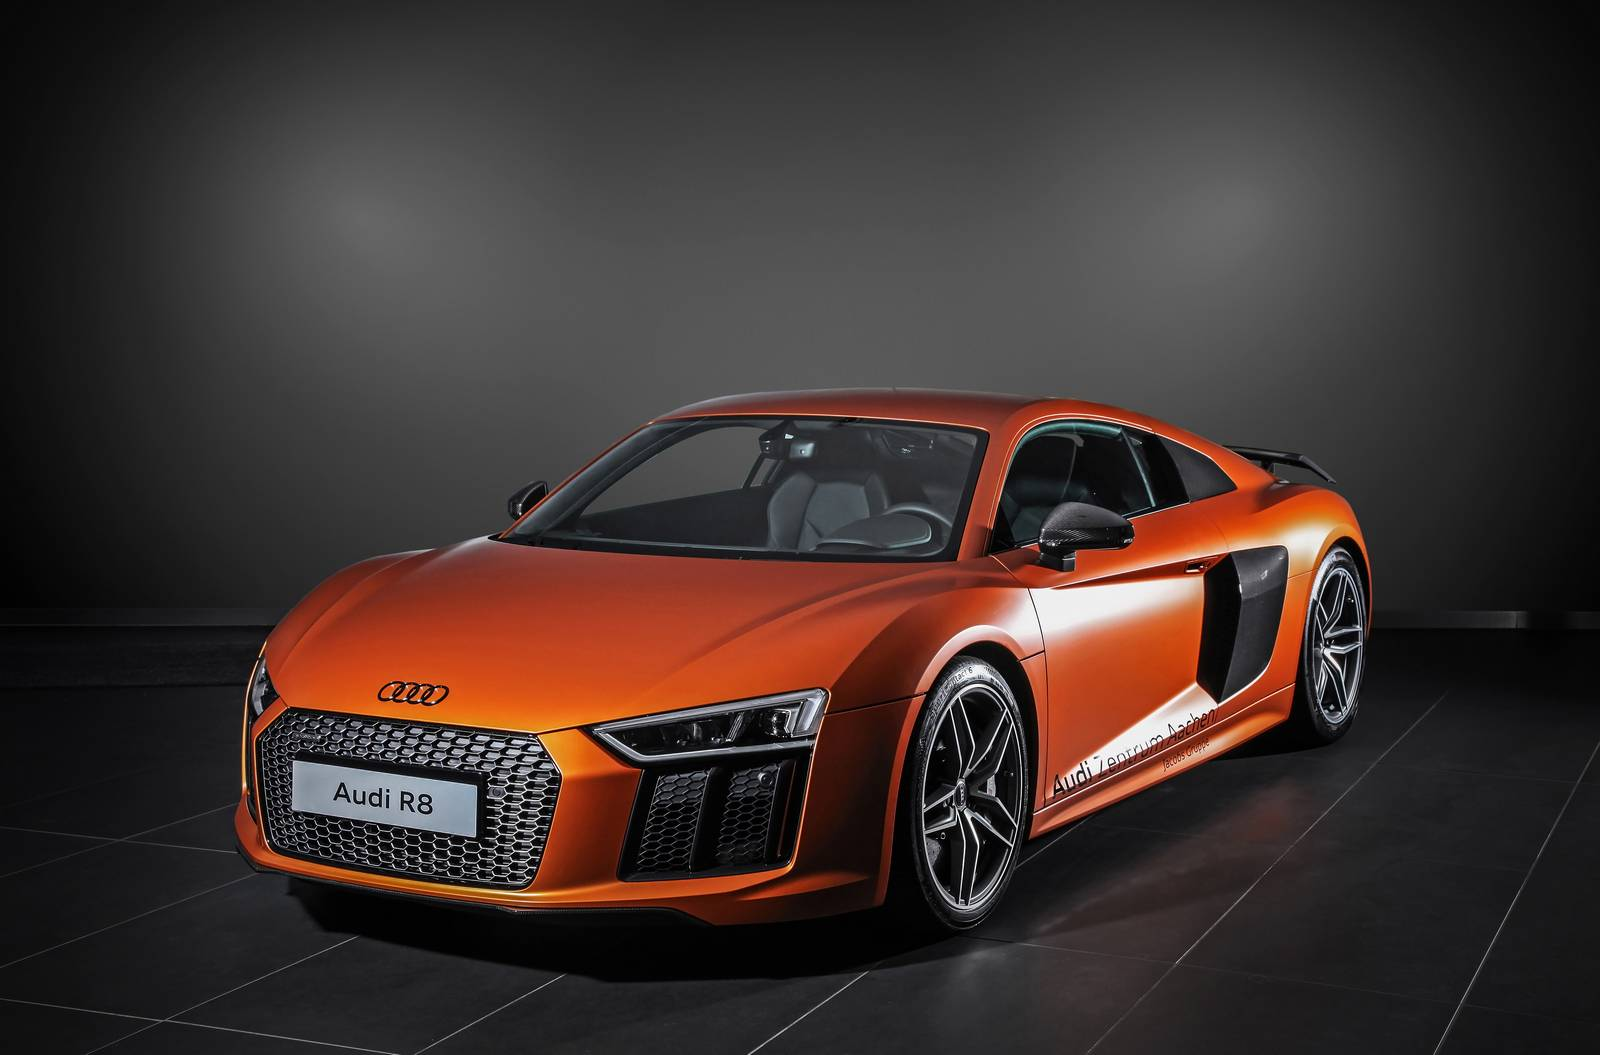 satin canyon copper audi r8 v10 plus by hplusb design gtspirit. Black Bedroom Furniture Sets. Home Design Ideas